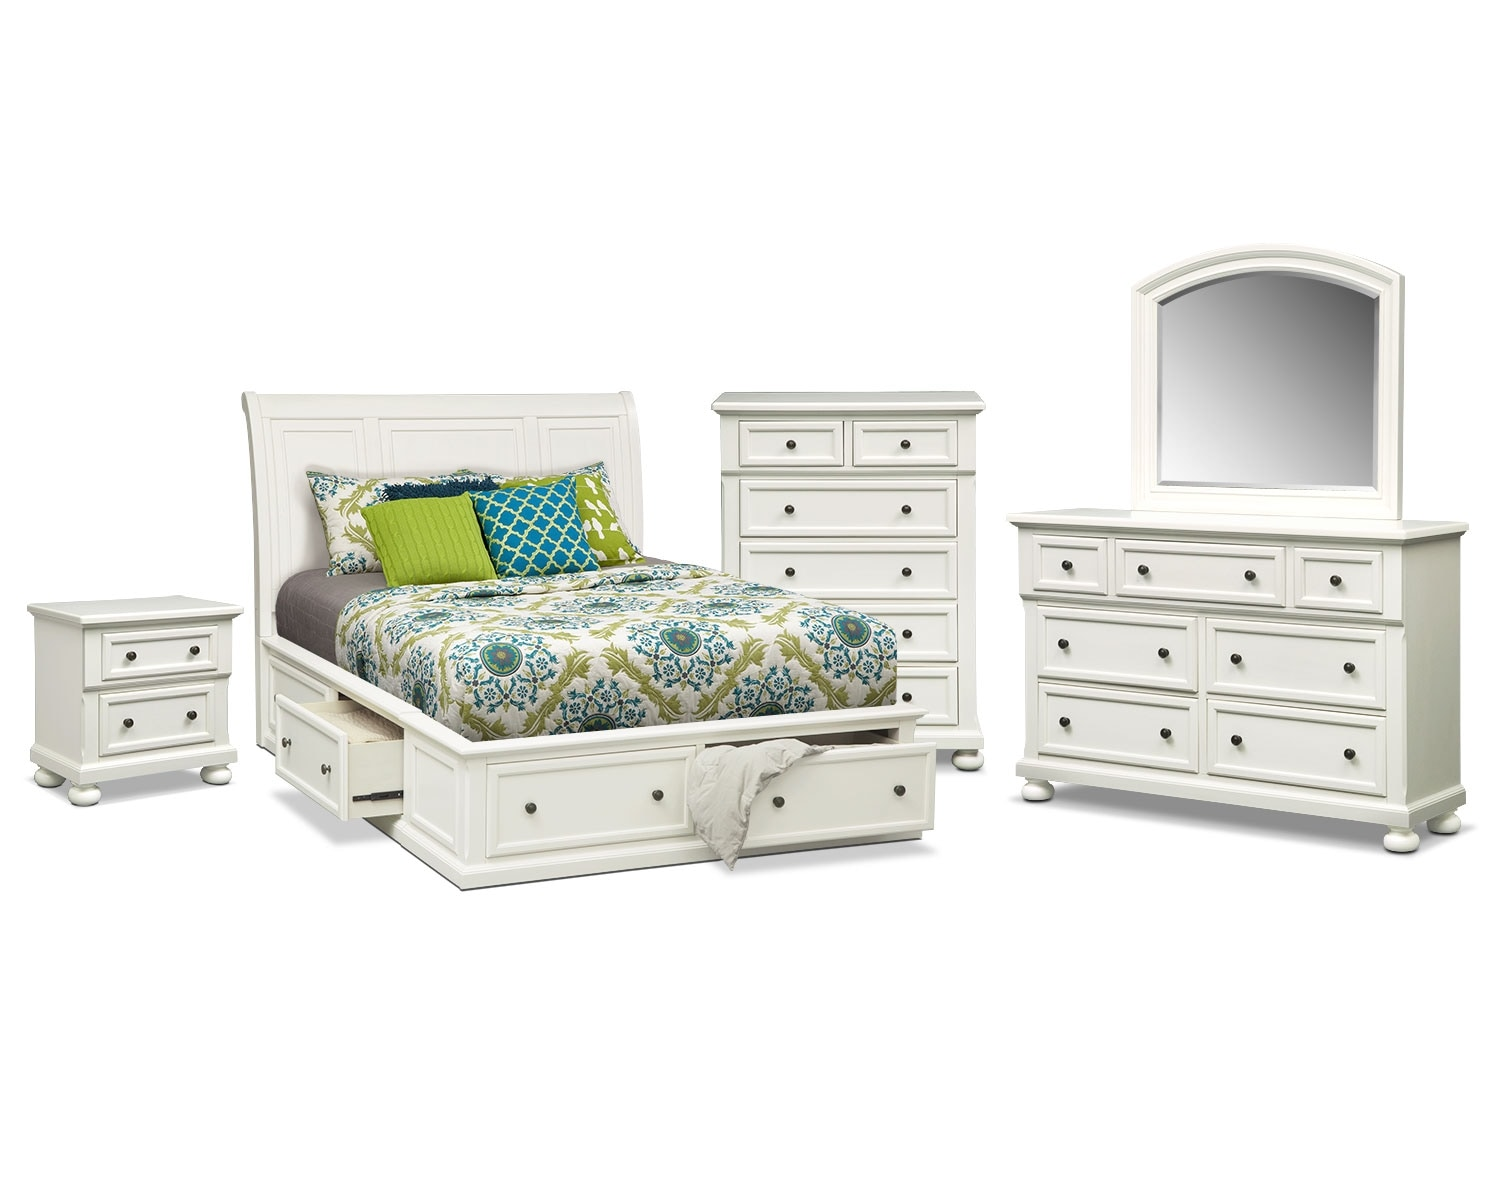 Hanover queen storage bed white value city furniture for White bedroom set with storage